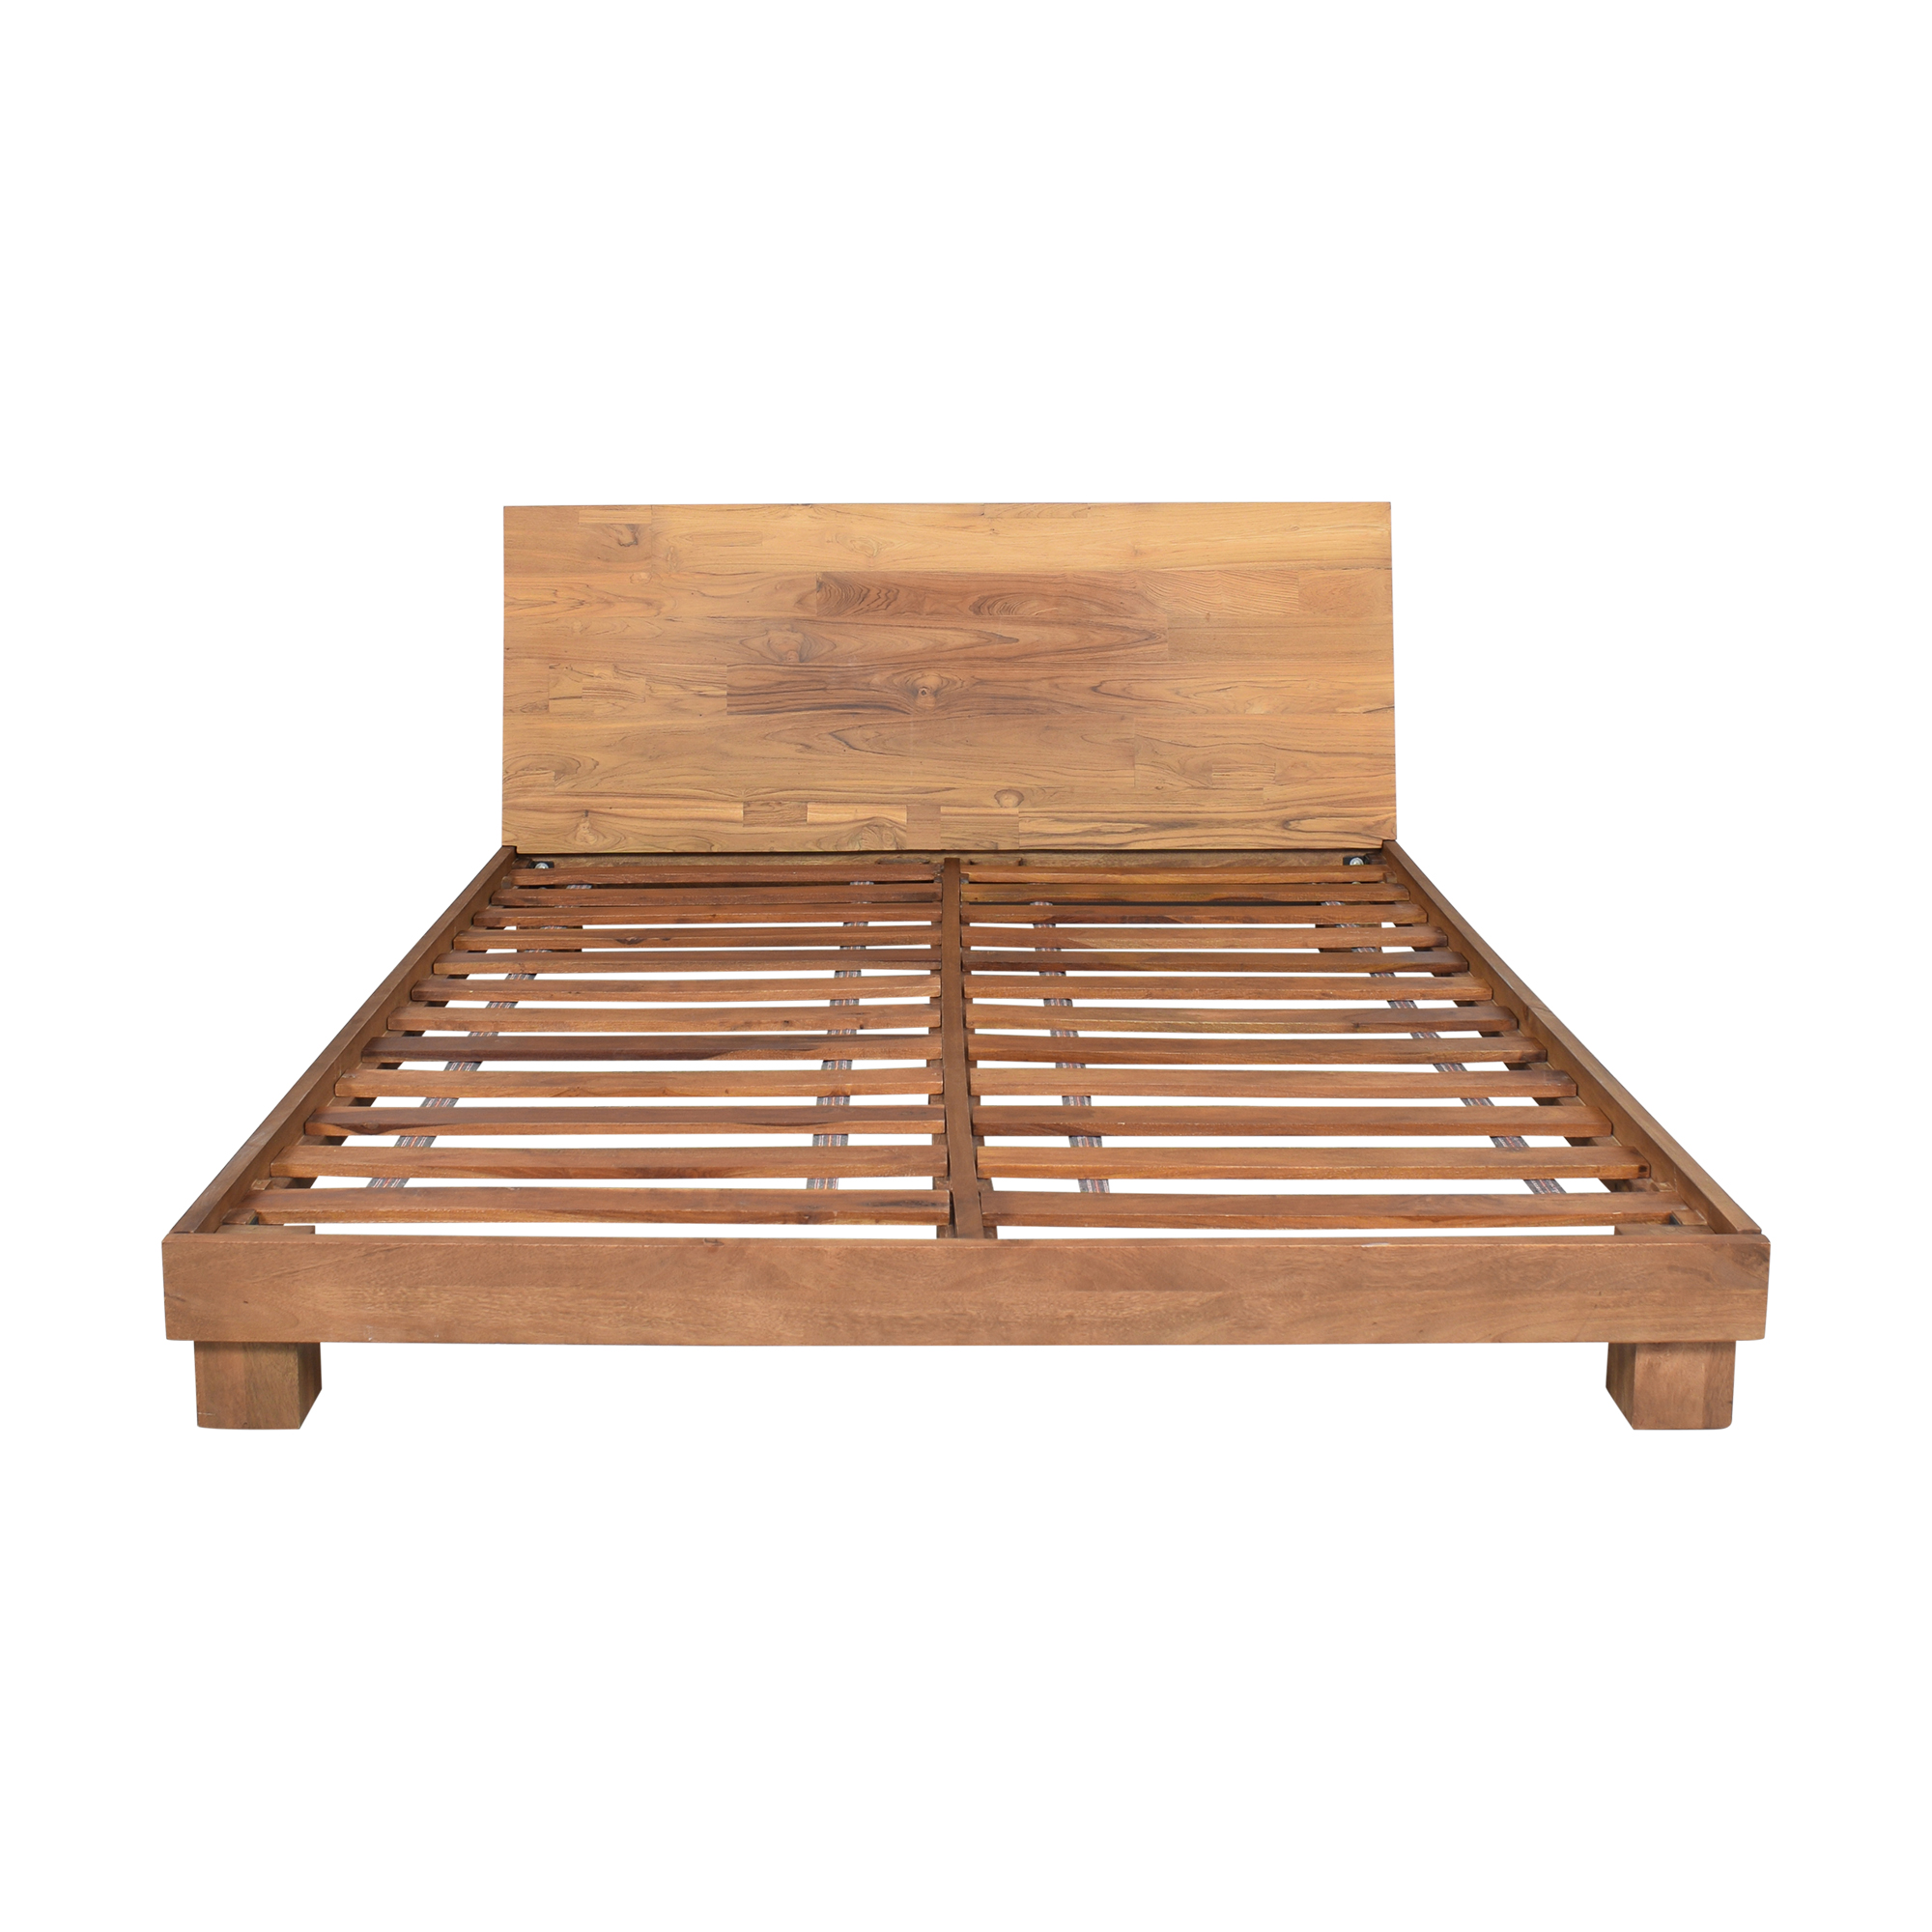 CB2 CB2 Dondra Queen Bed second hand